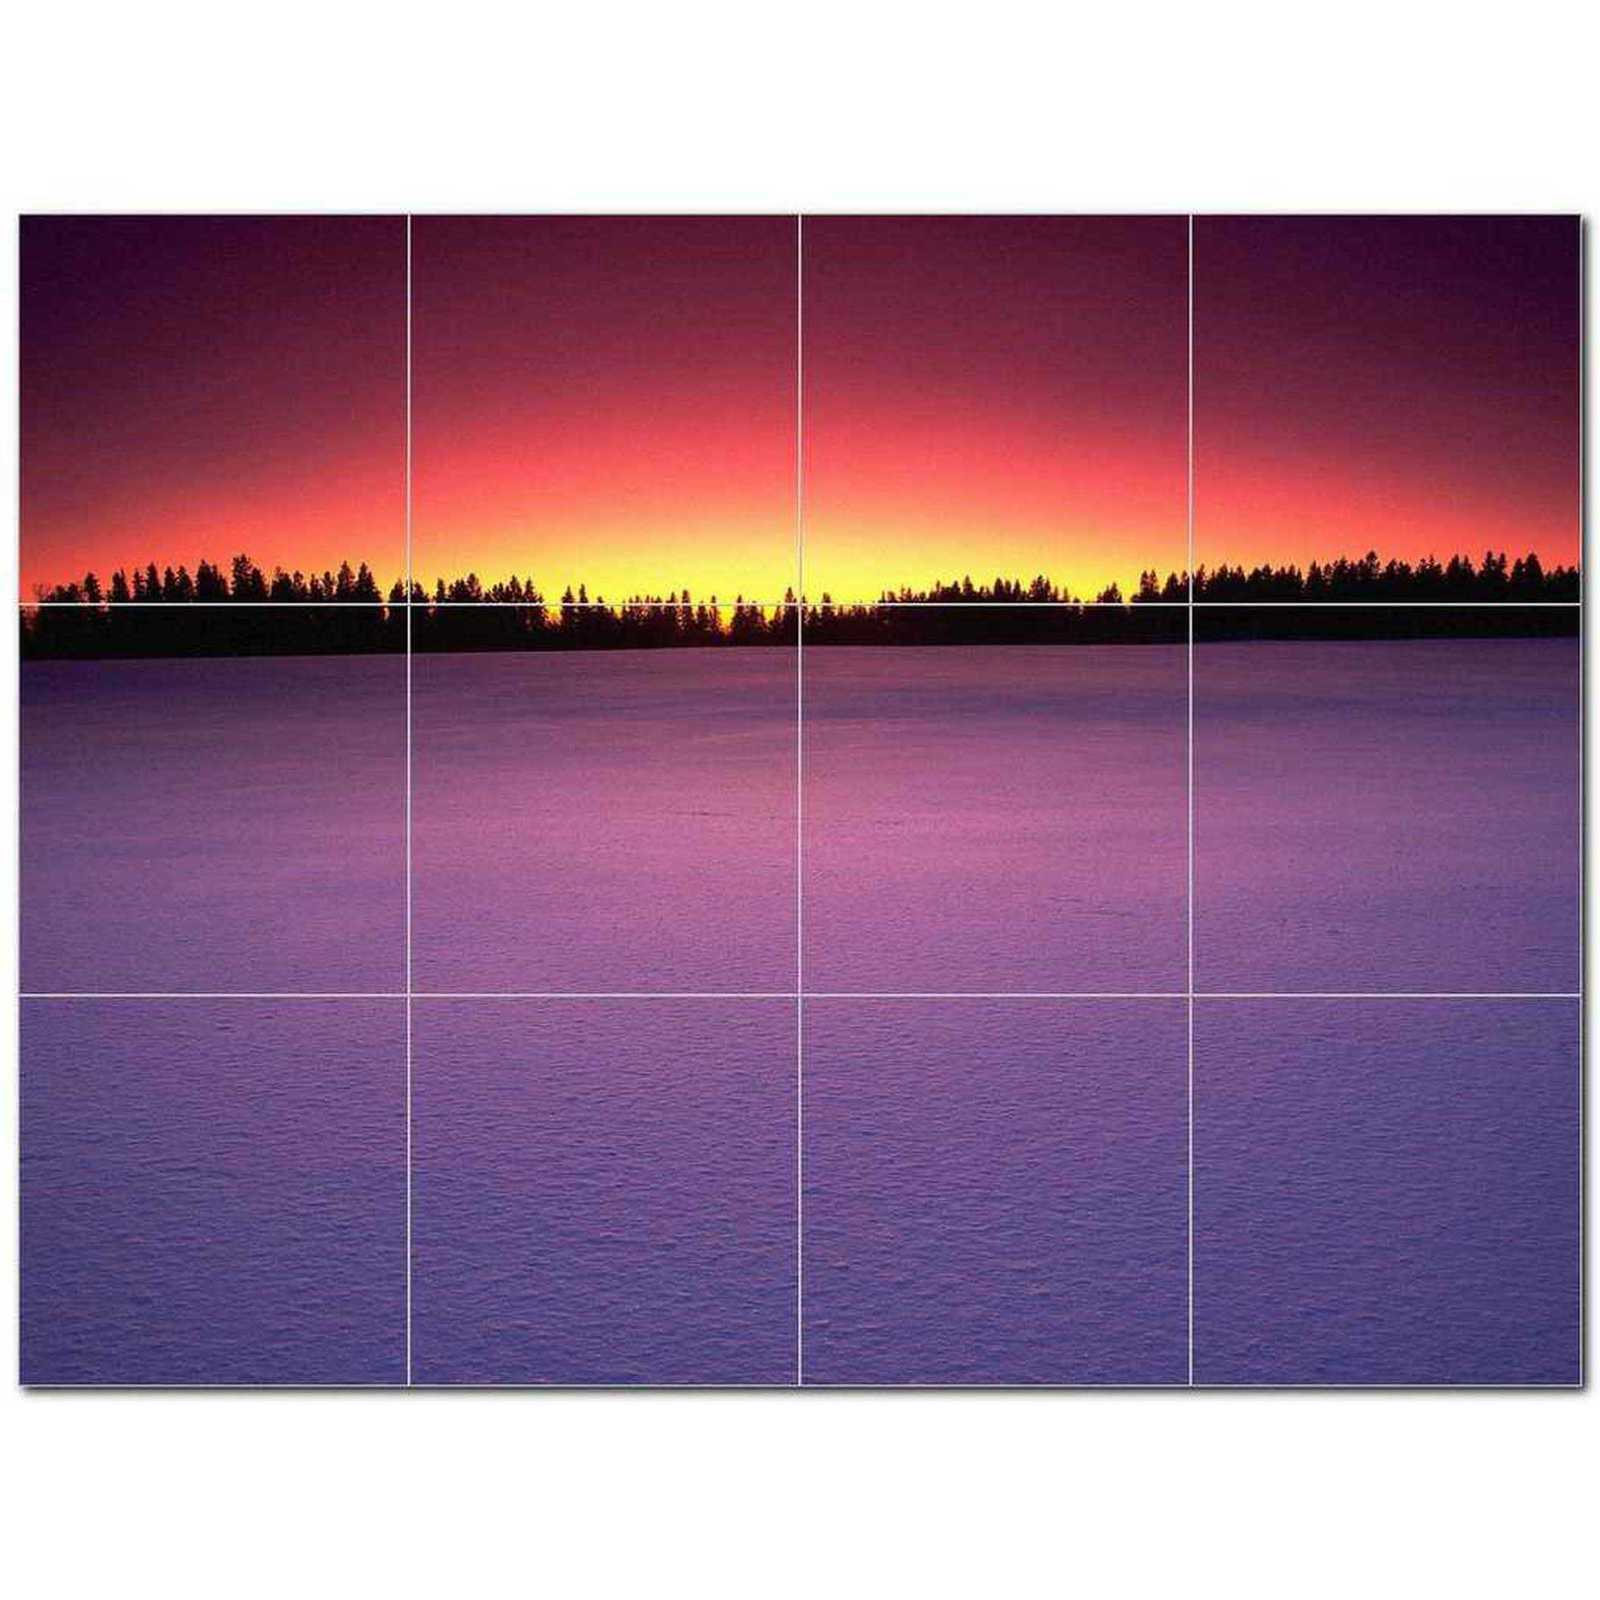 Primary image for Sunset Photo Ceramic Tile Mural Kitchen Backsplash Bathroom Shower BAZ405940